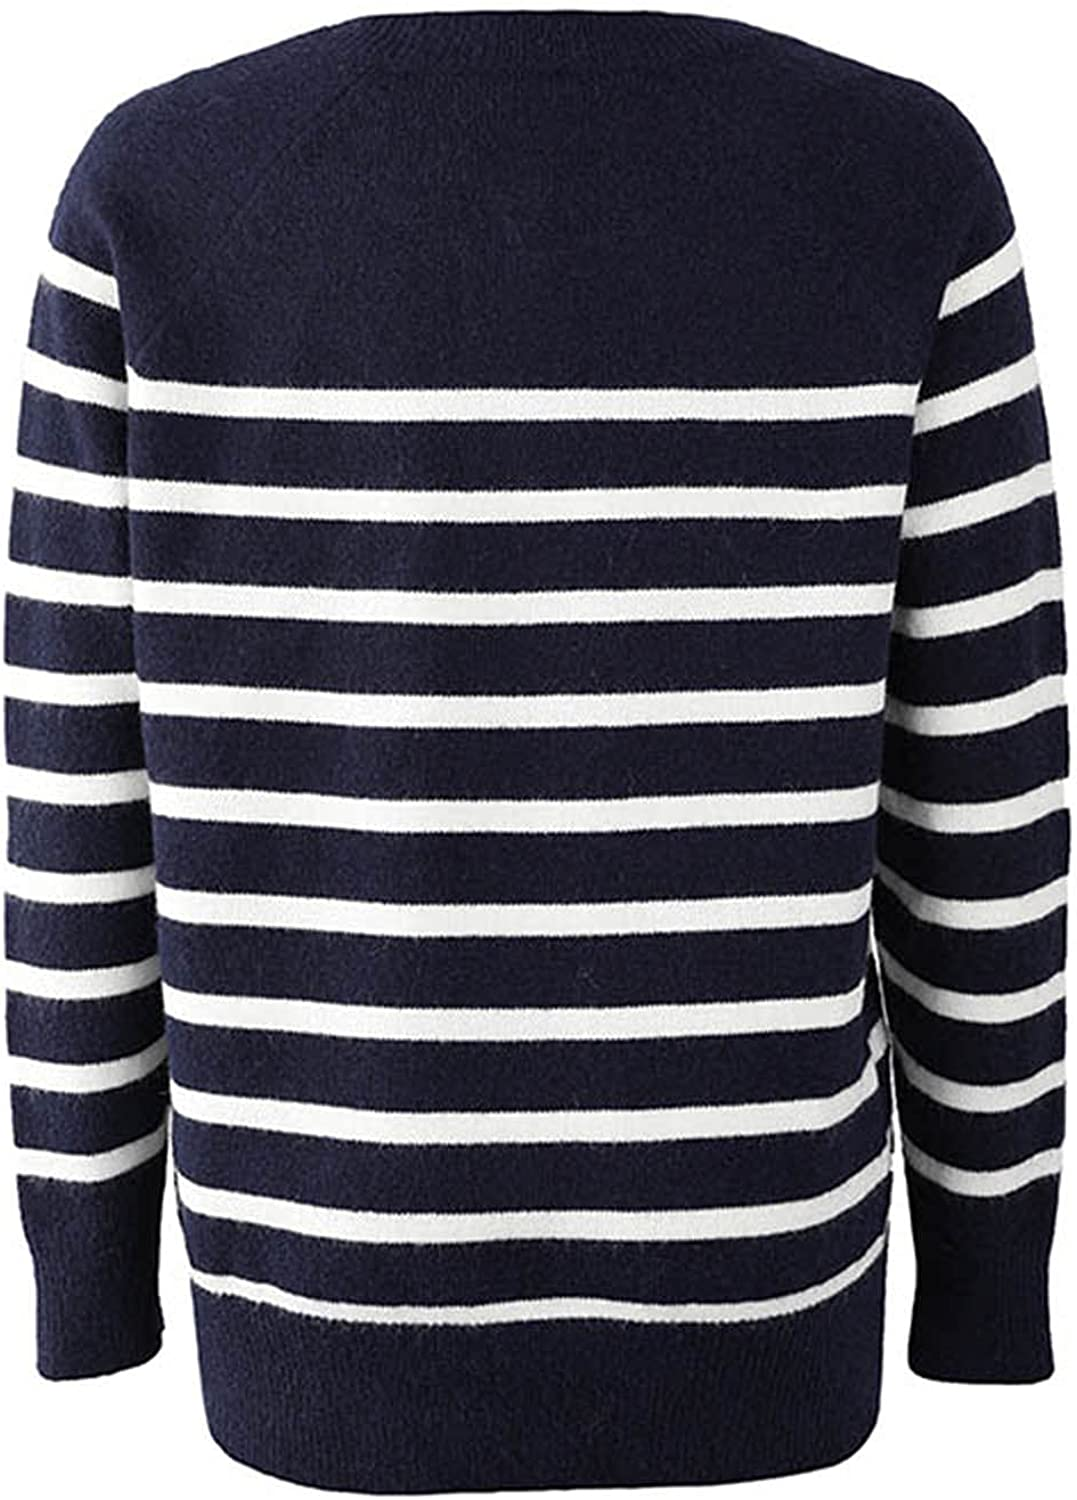 Women Sweater Jumper Top Striped O Neck Buttoned Knitwear Long Sleeve Pullover Tunic Knit Sweater by Pocciol